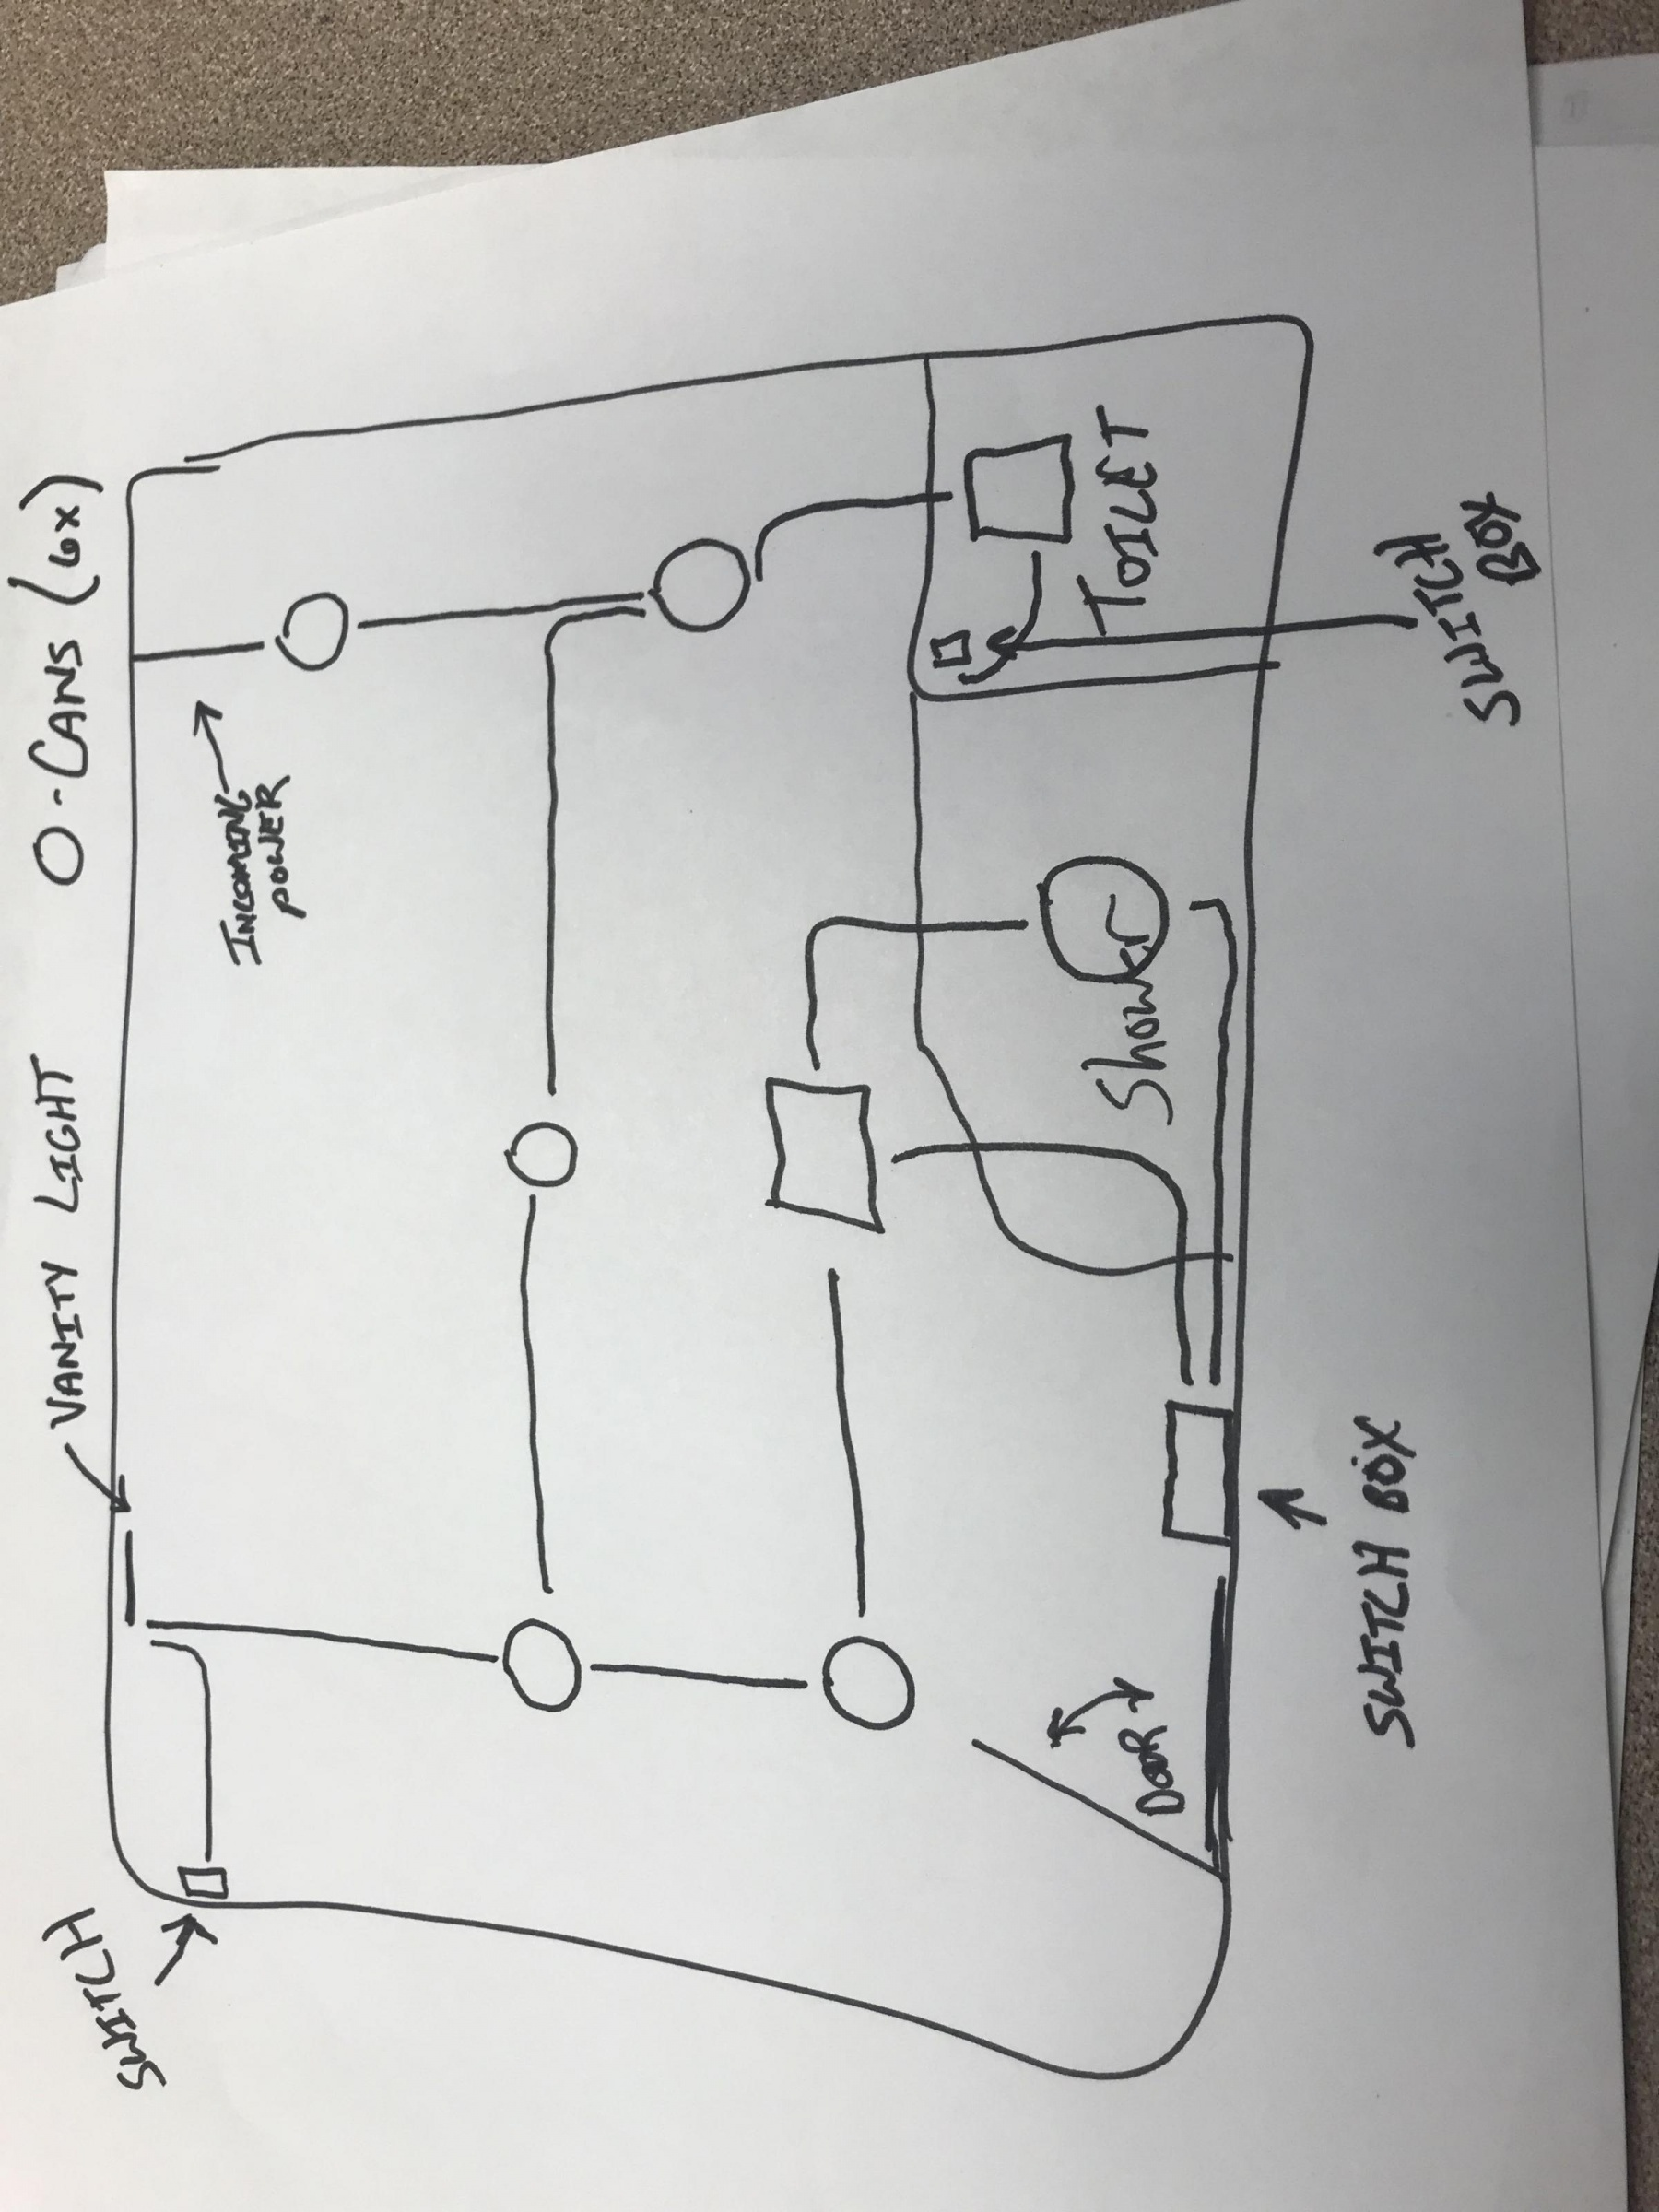 Need Circuit Diagram For A Large Bathroom